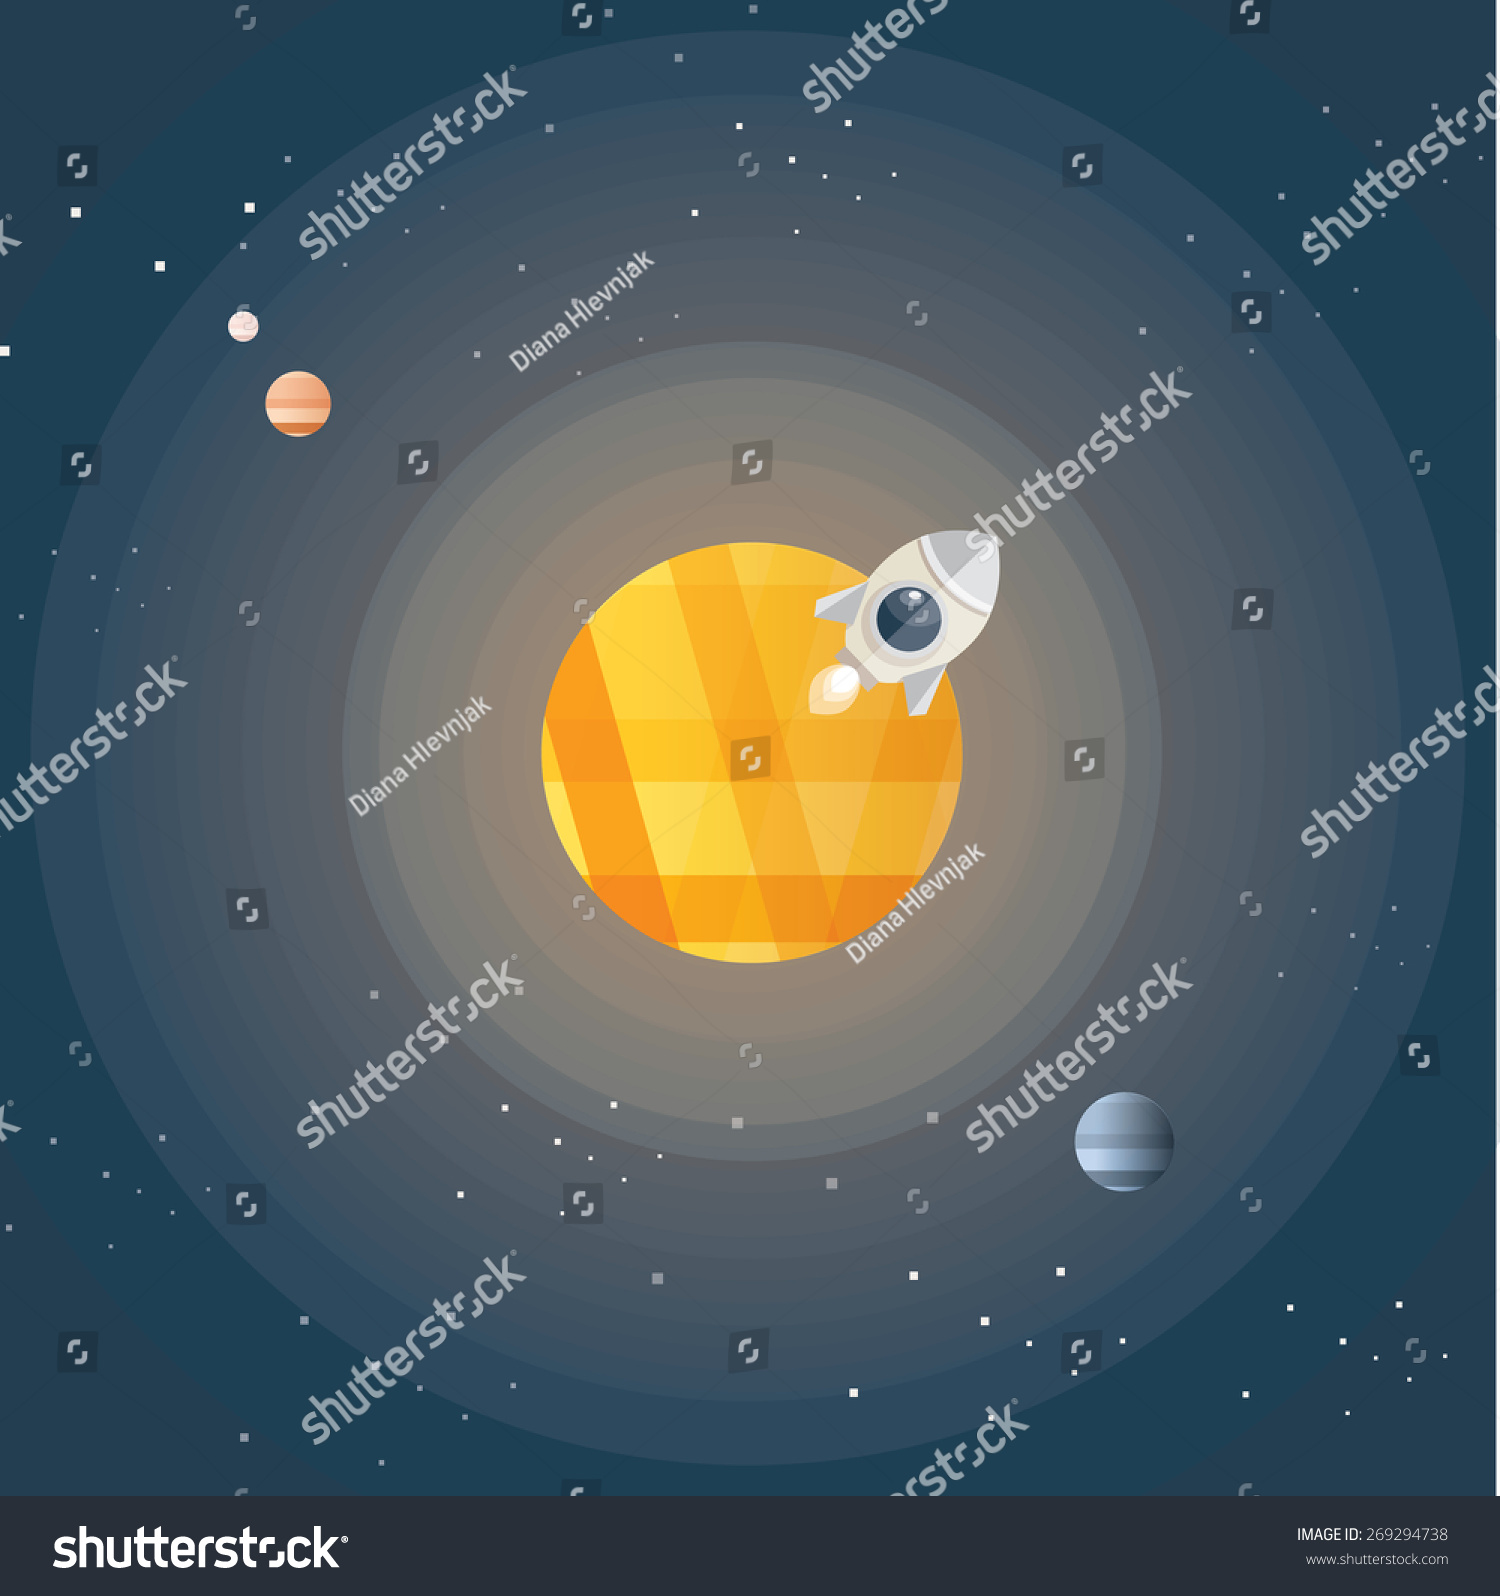 necessity of space exploration